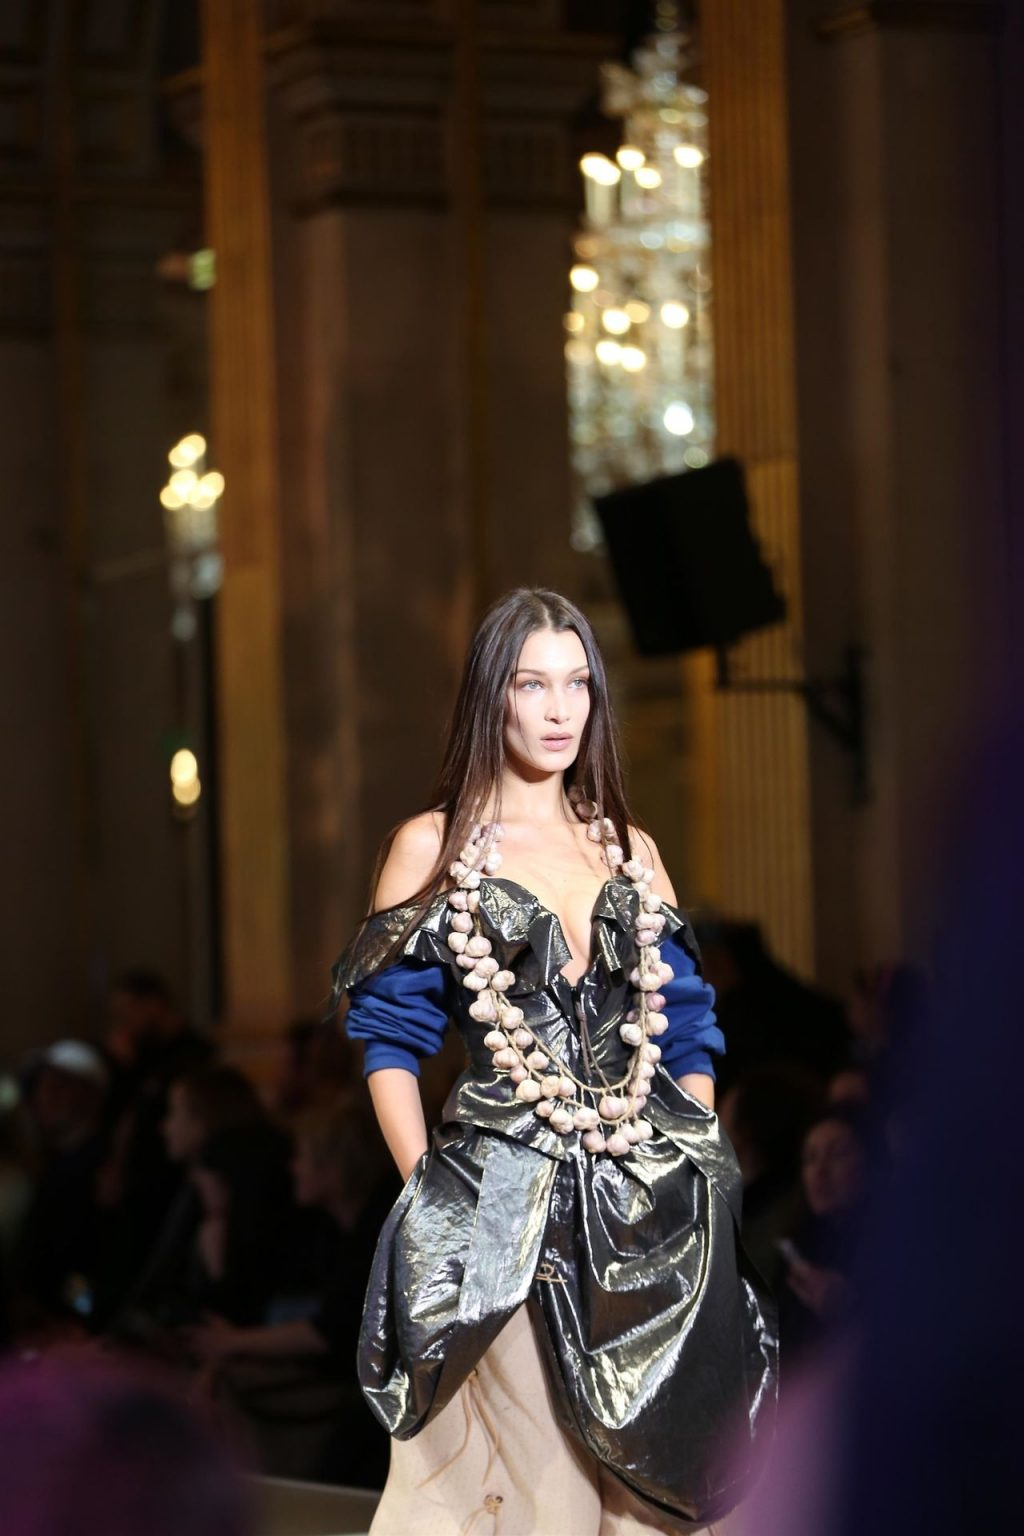 Bella Hadid Shows Her Tits at the Catwalk at Vivienne Westwood Fashion Show (30 Photos)